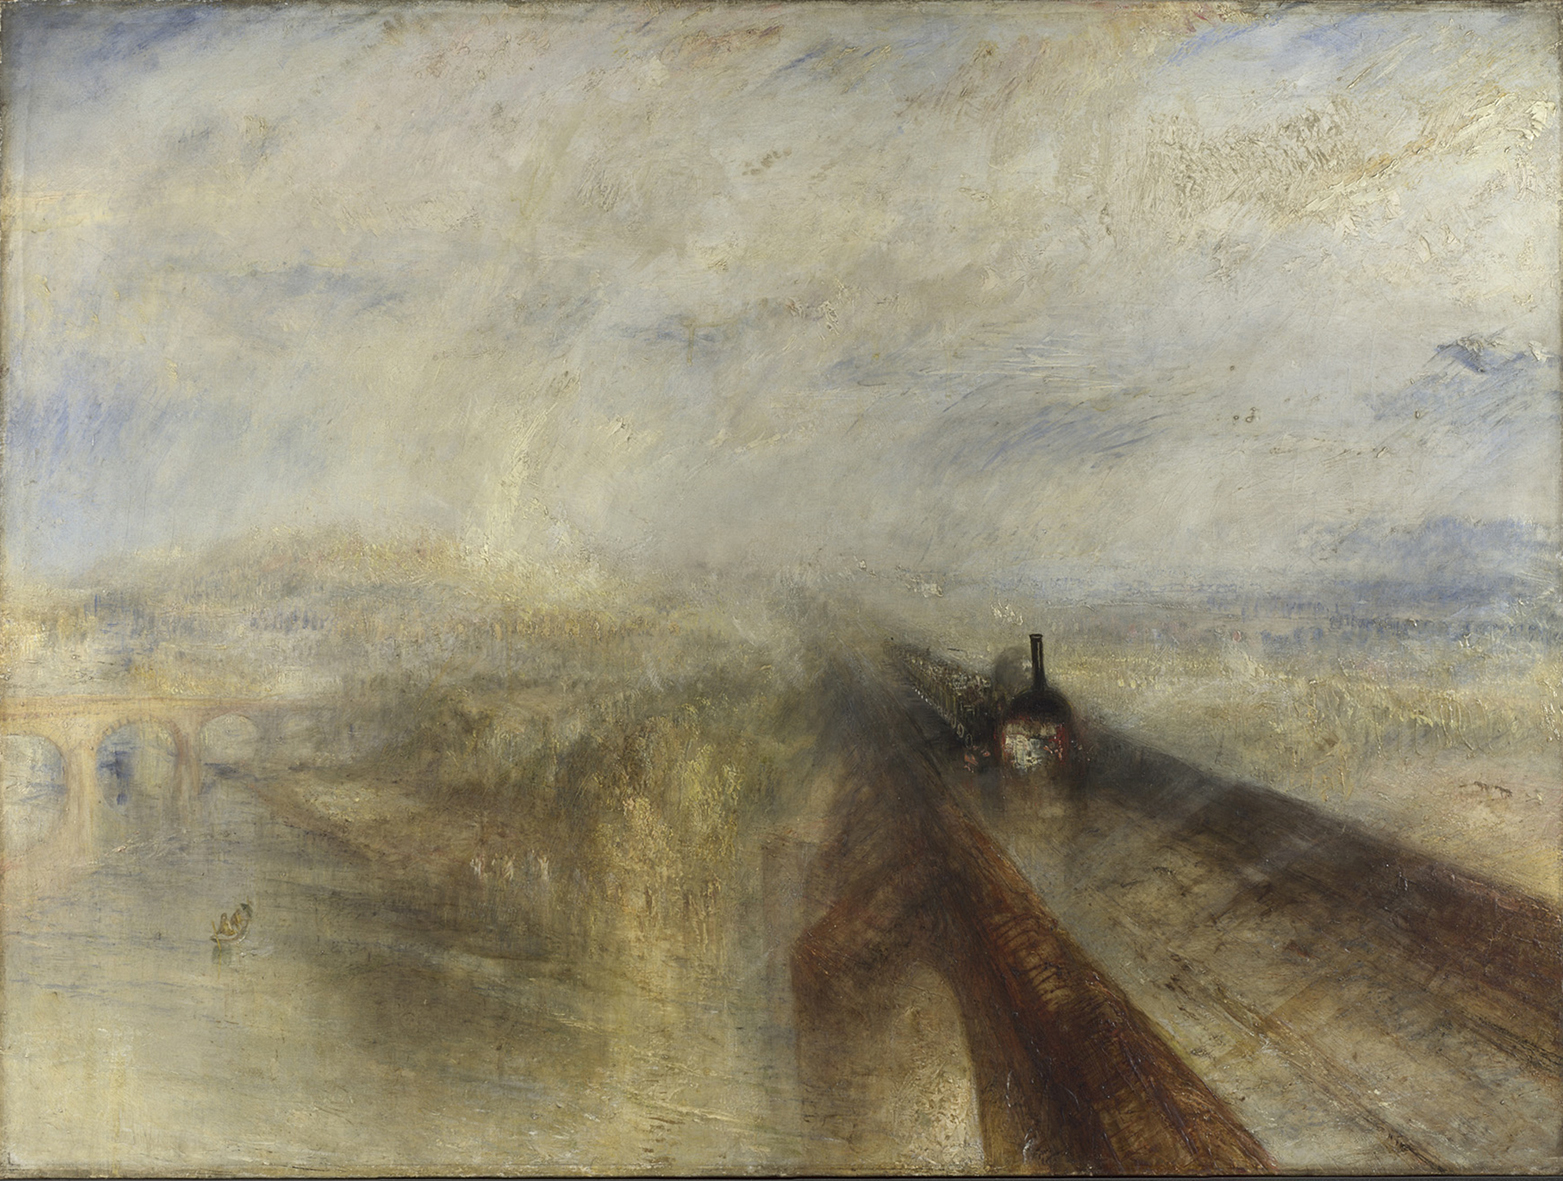 Joseph Mallord William Turner: Rain, Steam and Speed